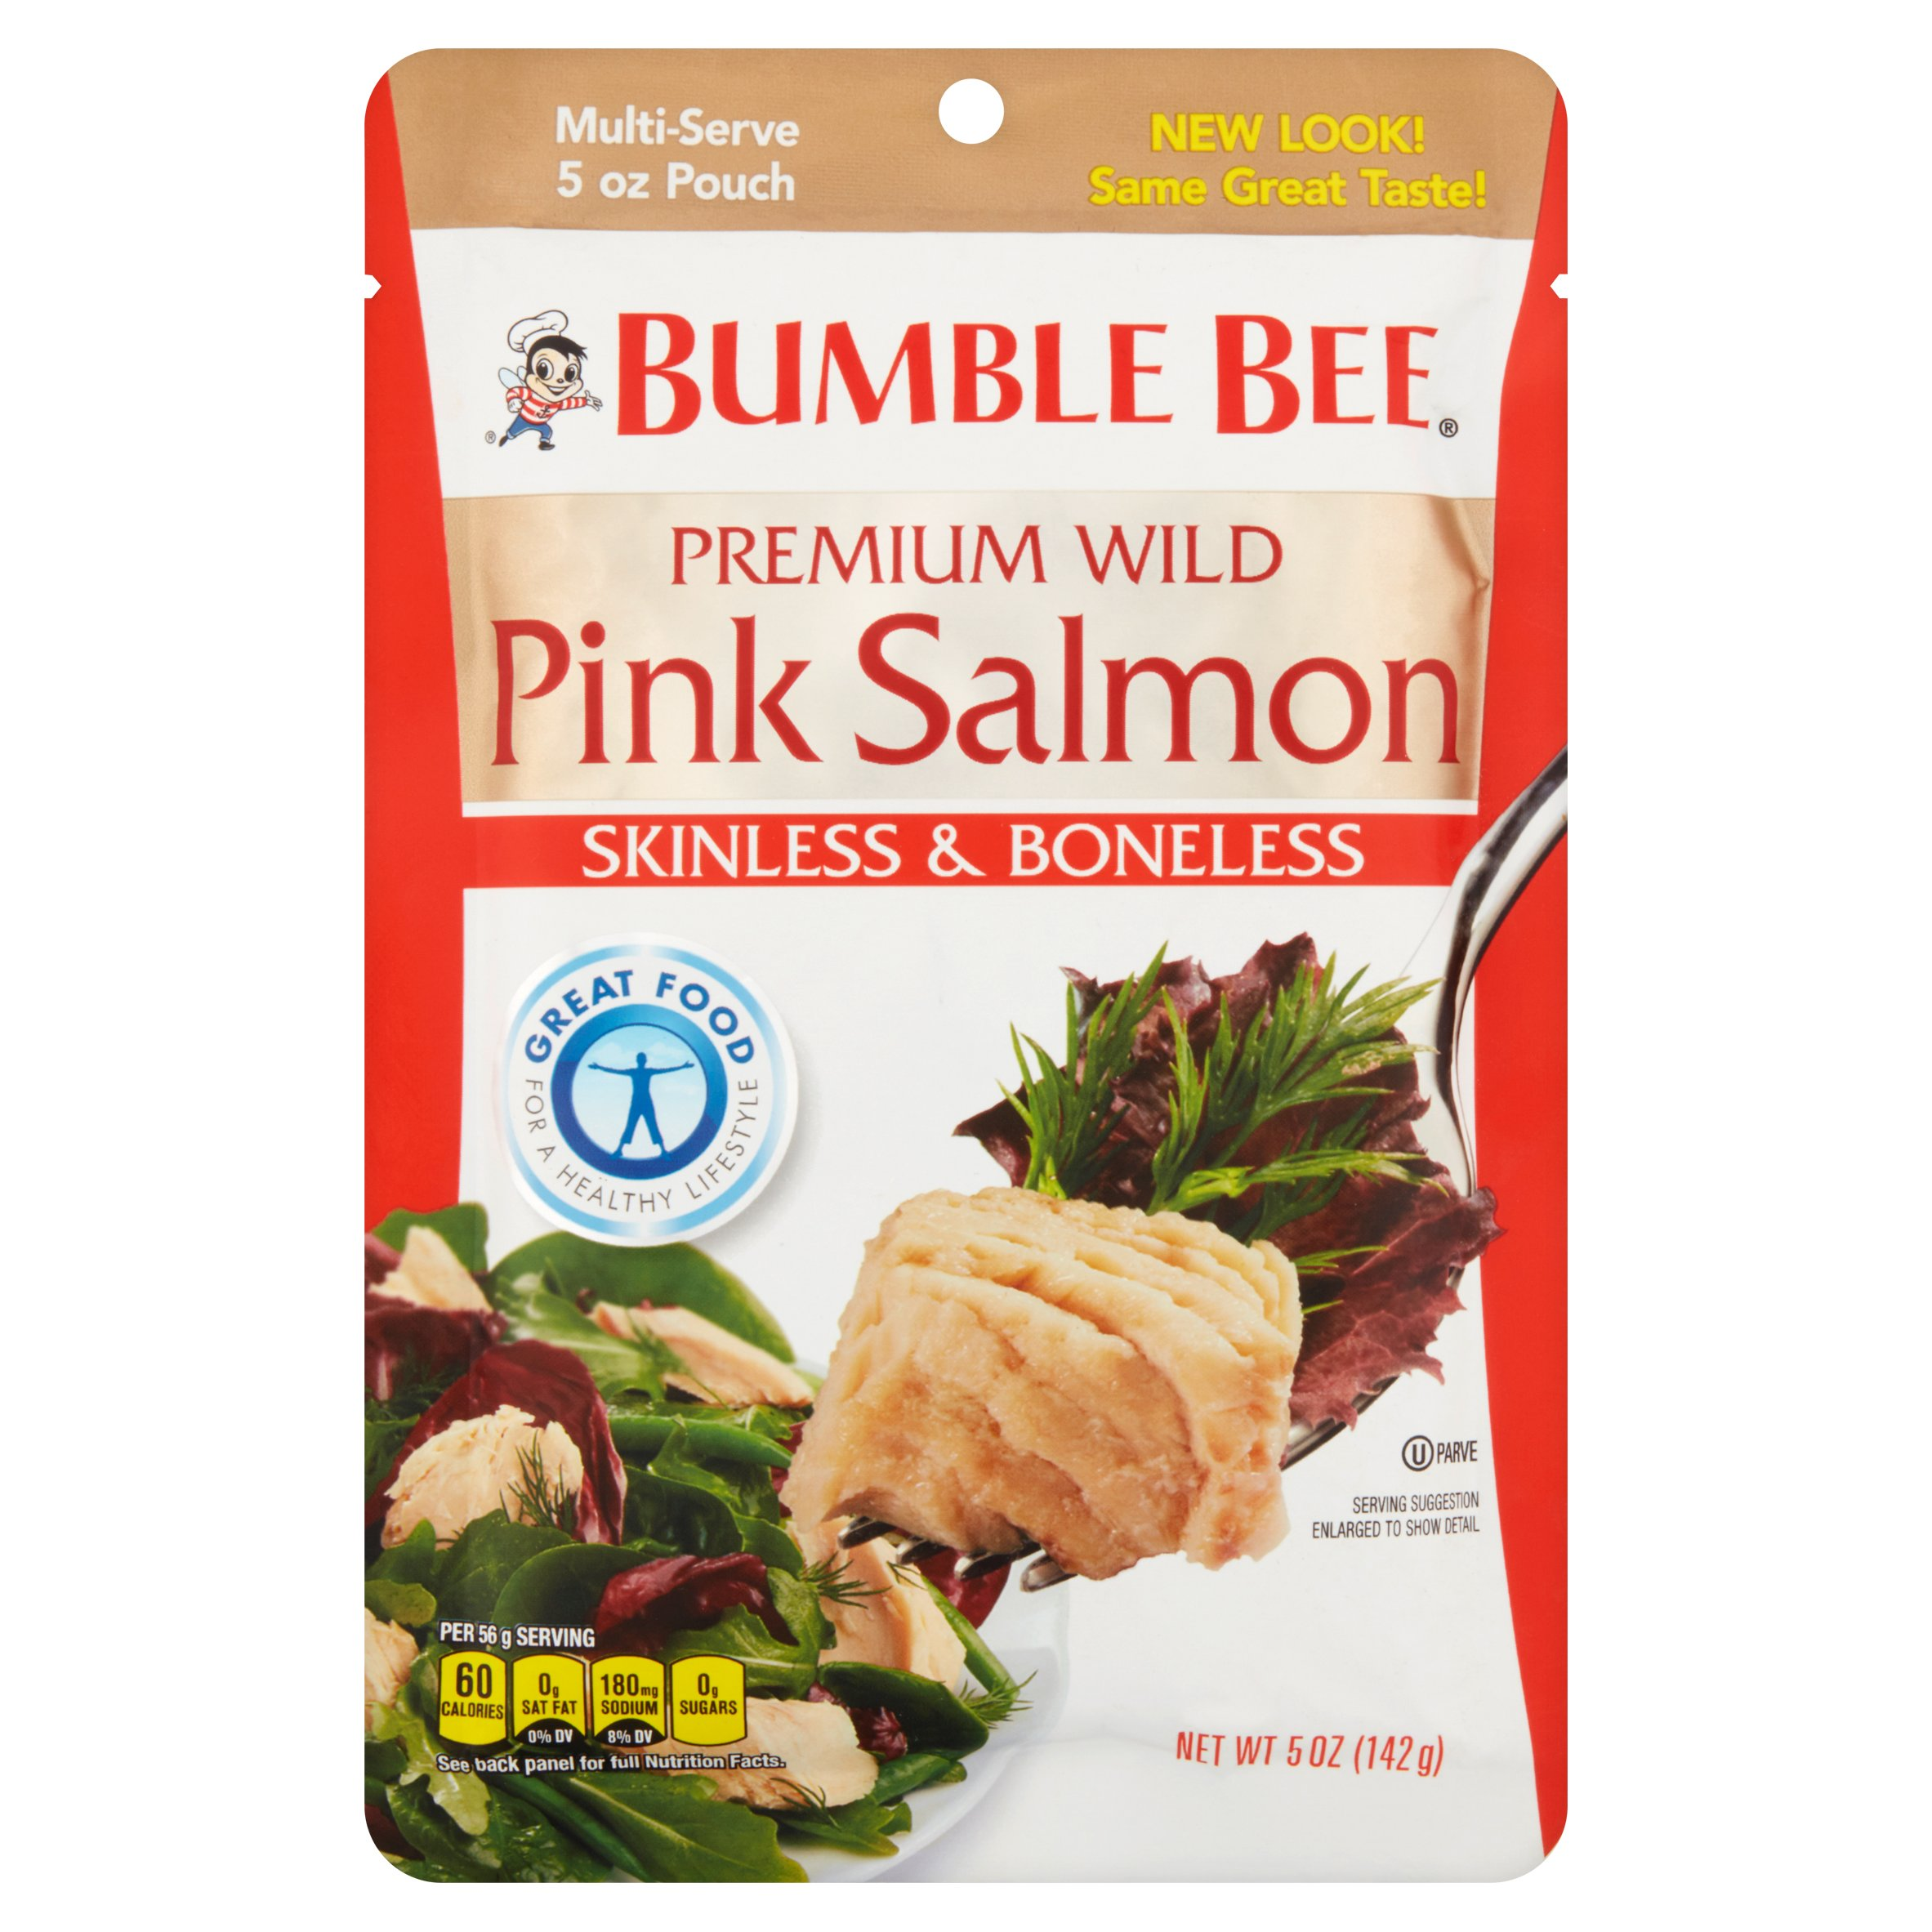 Bumble Bee Skinless & Boneless Premium Wild Pink Salmon, 5 oz by Bumble Bee Saefoods